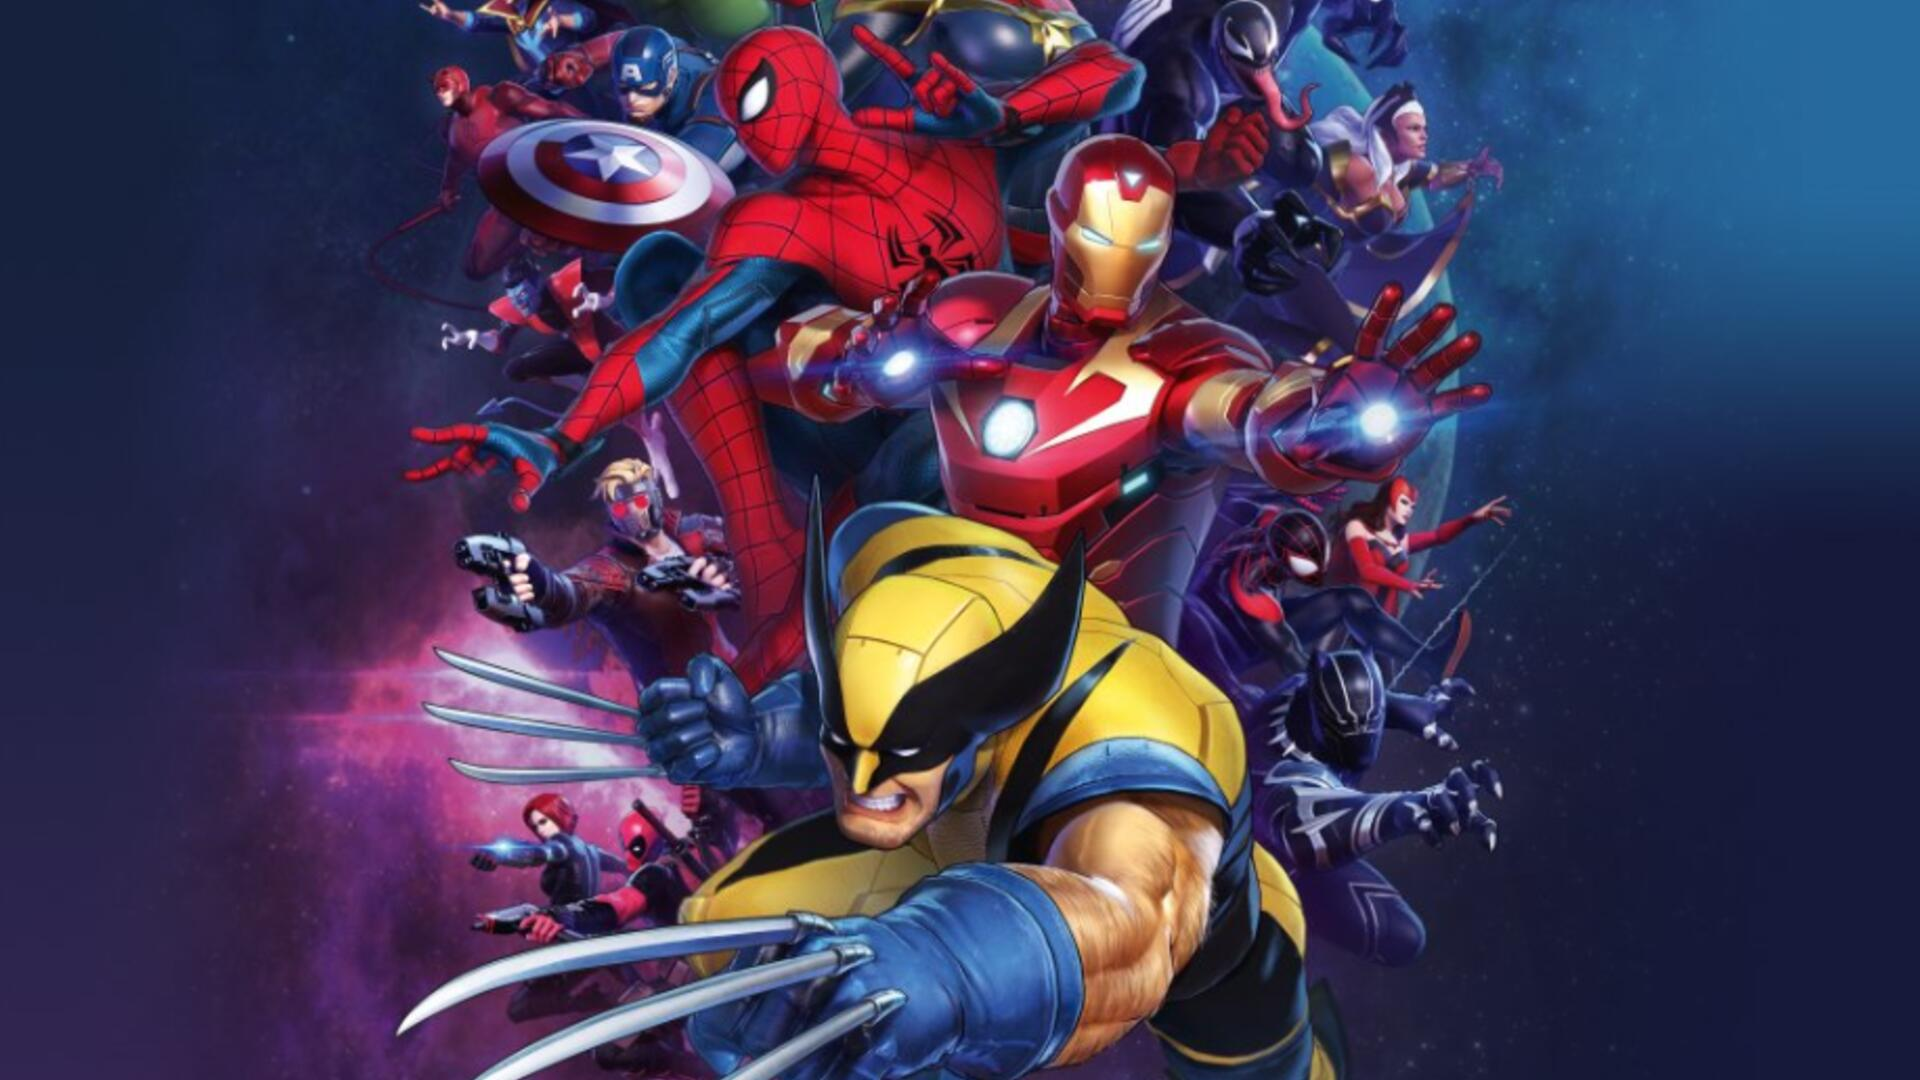 Marvel Ultimate Alliance 3 Reveals Two New Heroes, But Only One Has Links to the Avengers Films